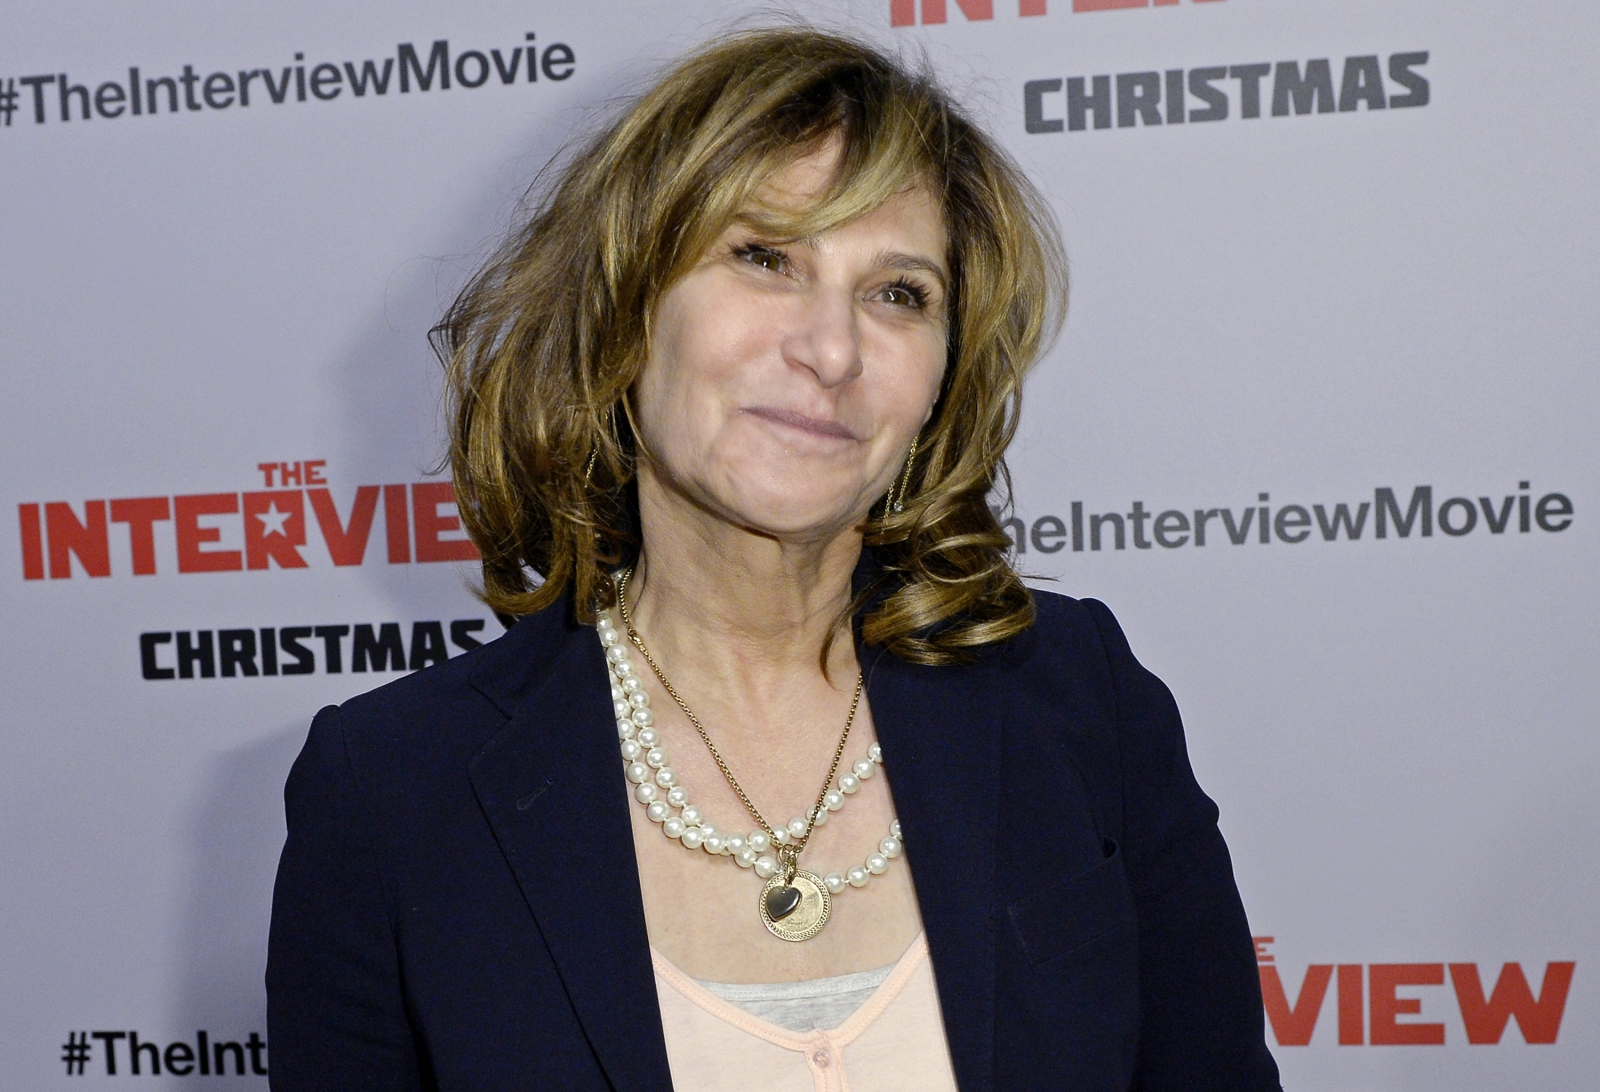 Sony Pictures chief Amy Pascal quits after Angelina Jolie emails